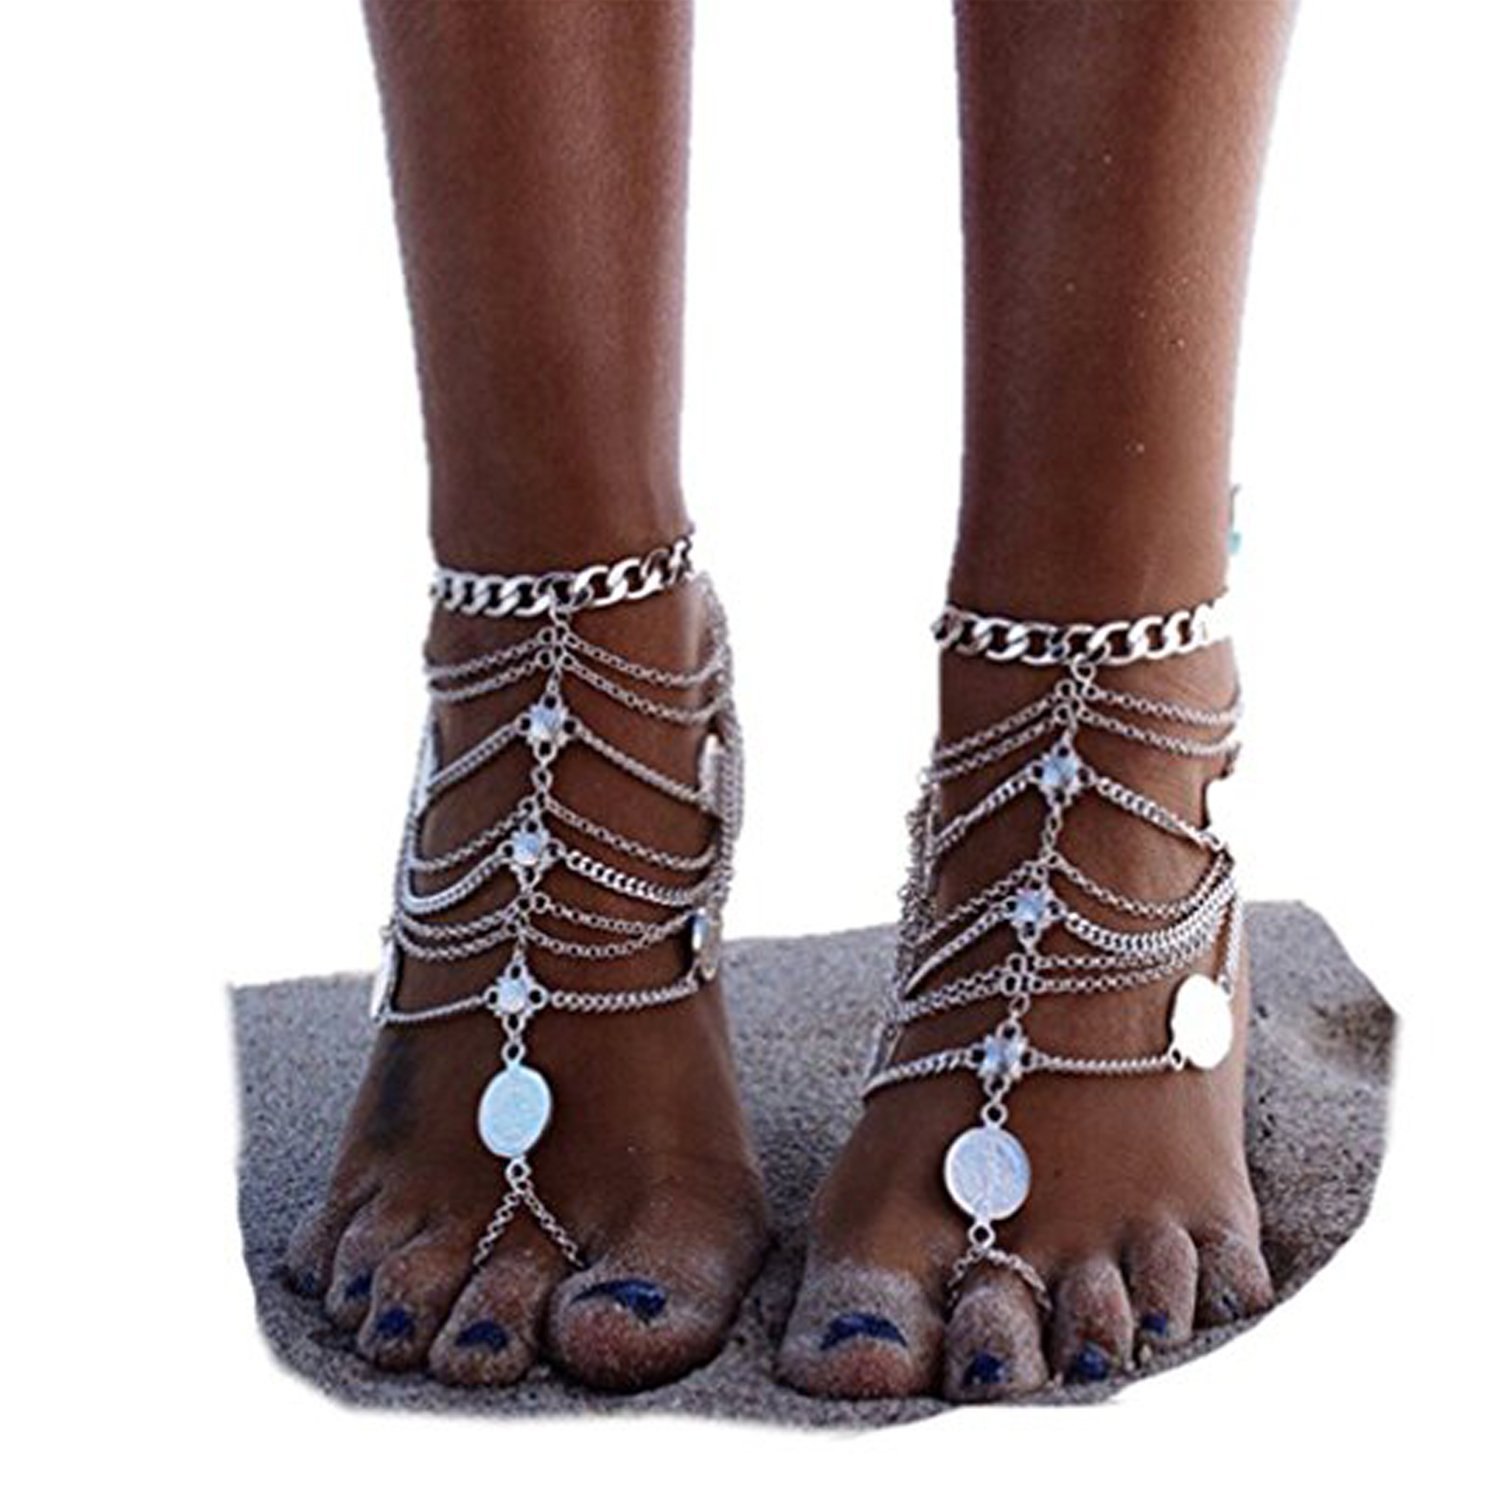 1 Pair Boho Vintage Gold Silver Coin Blessing Symbol Tassel Anklets Foot Jewelry HUSUP YD082-1